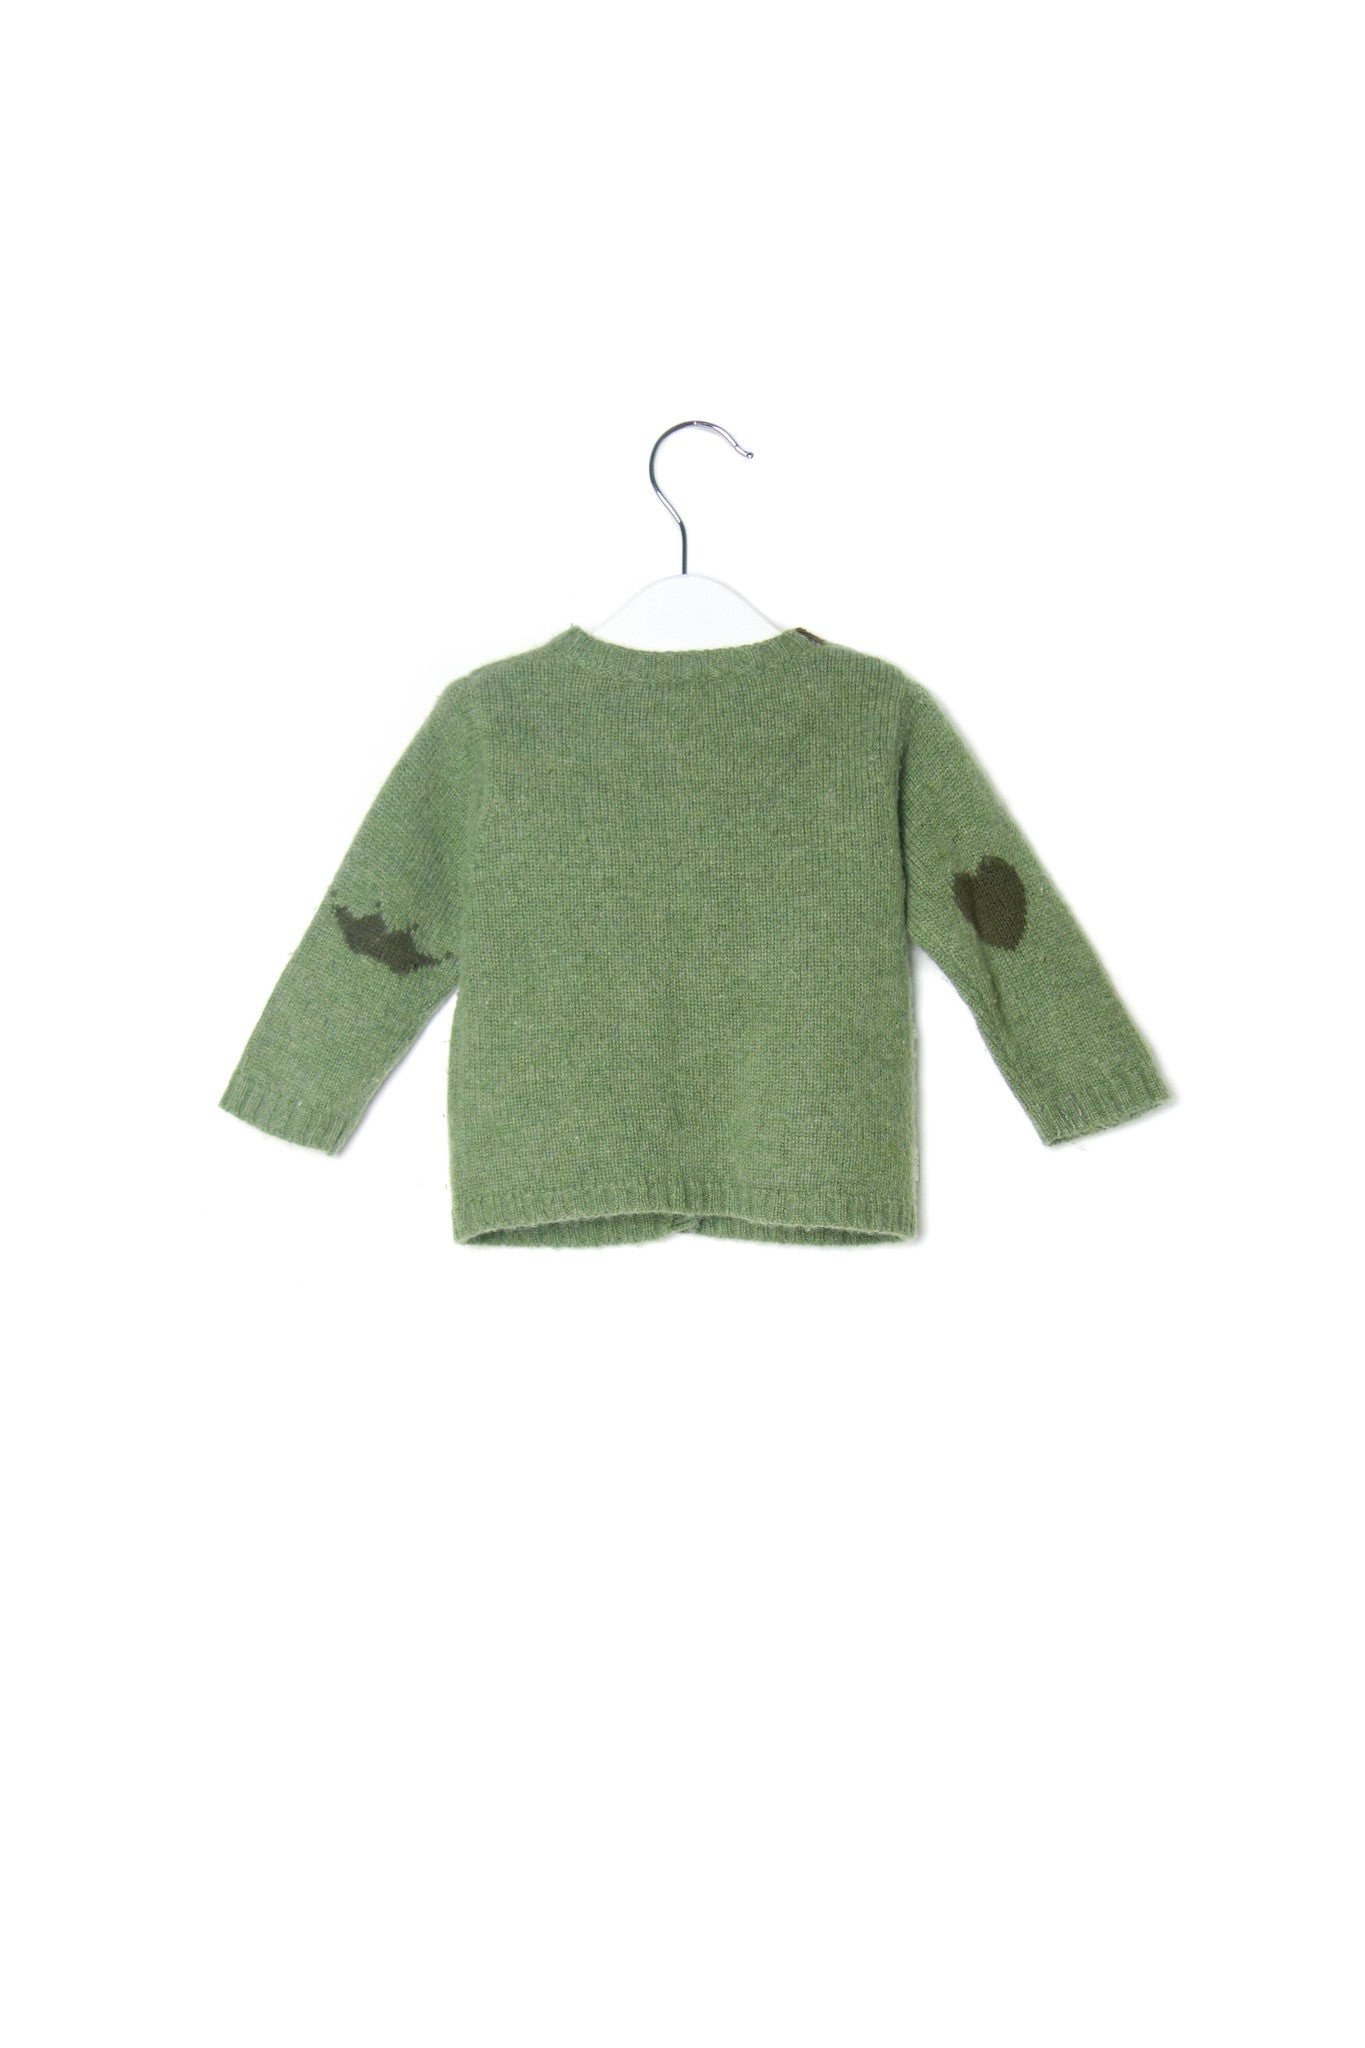 10001915 Marie Chantal Baby~Cardigan 6M at Retykle